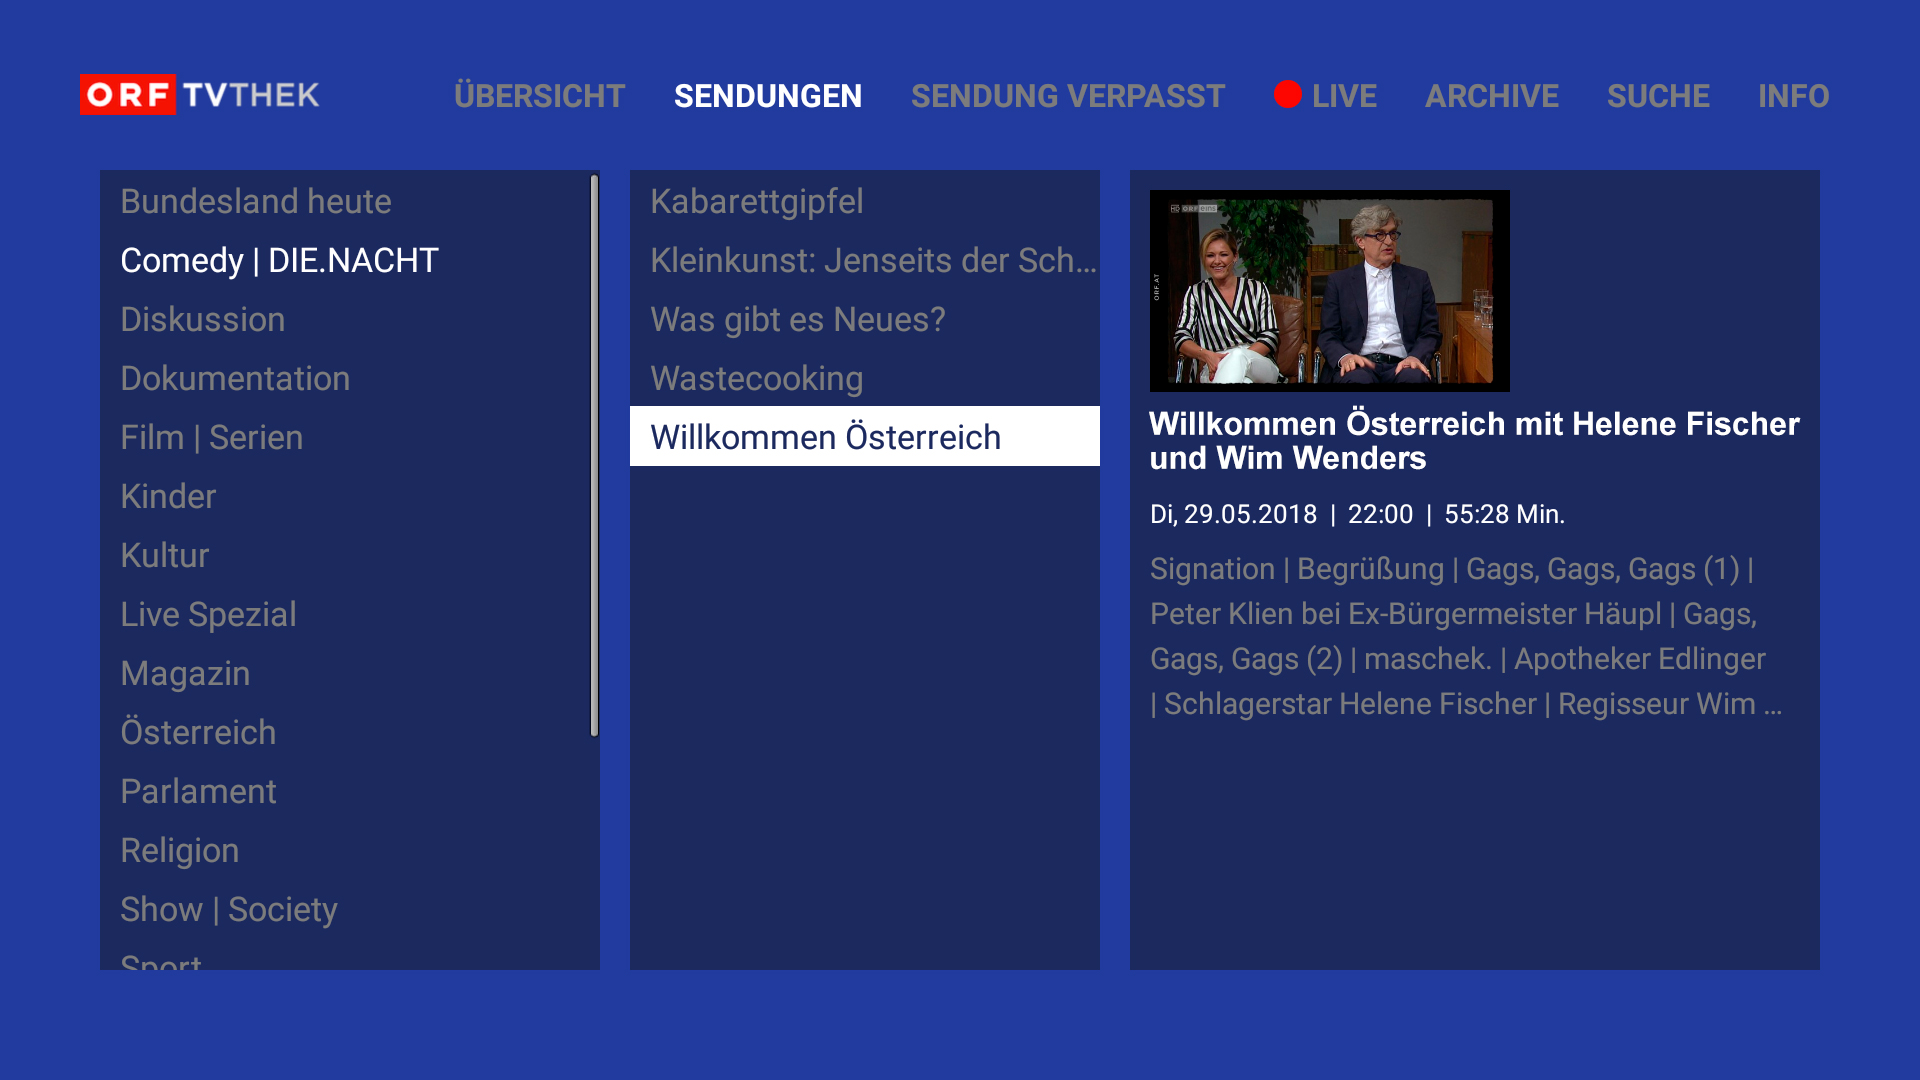 Orf Tvthek Video On Demand